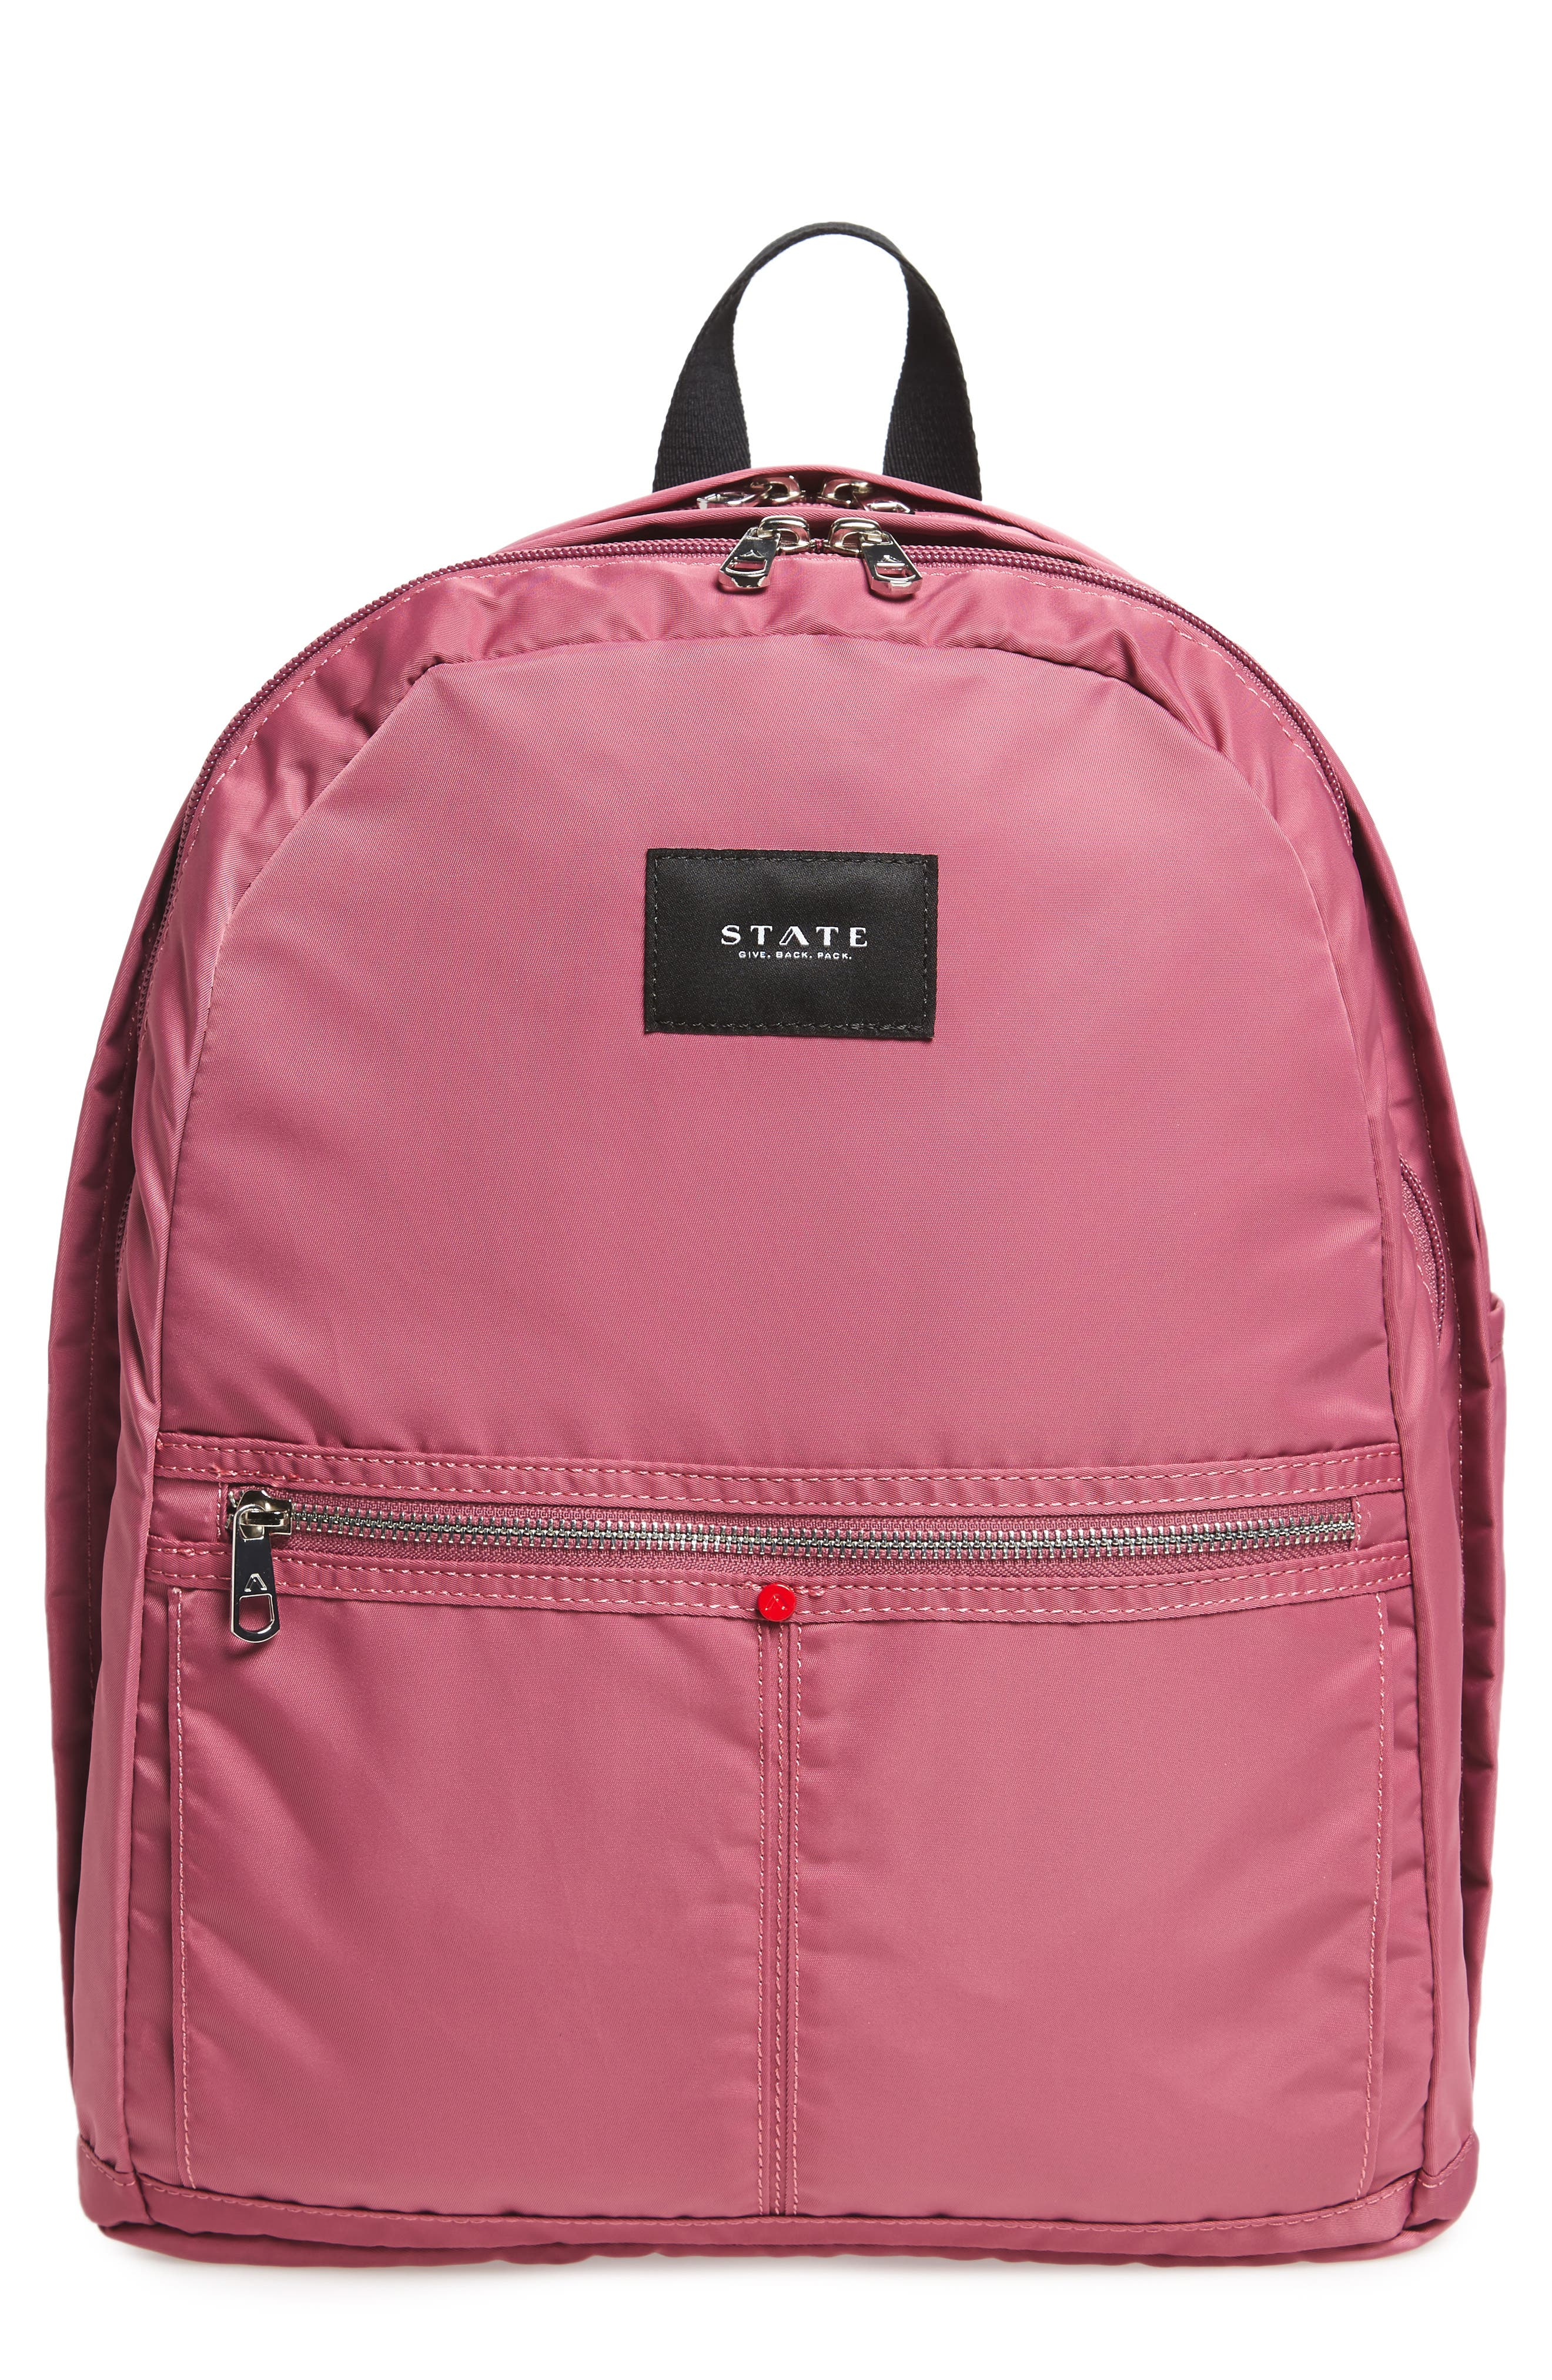 STATE Bags The Heights Kent Backpack